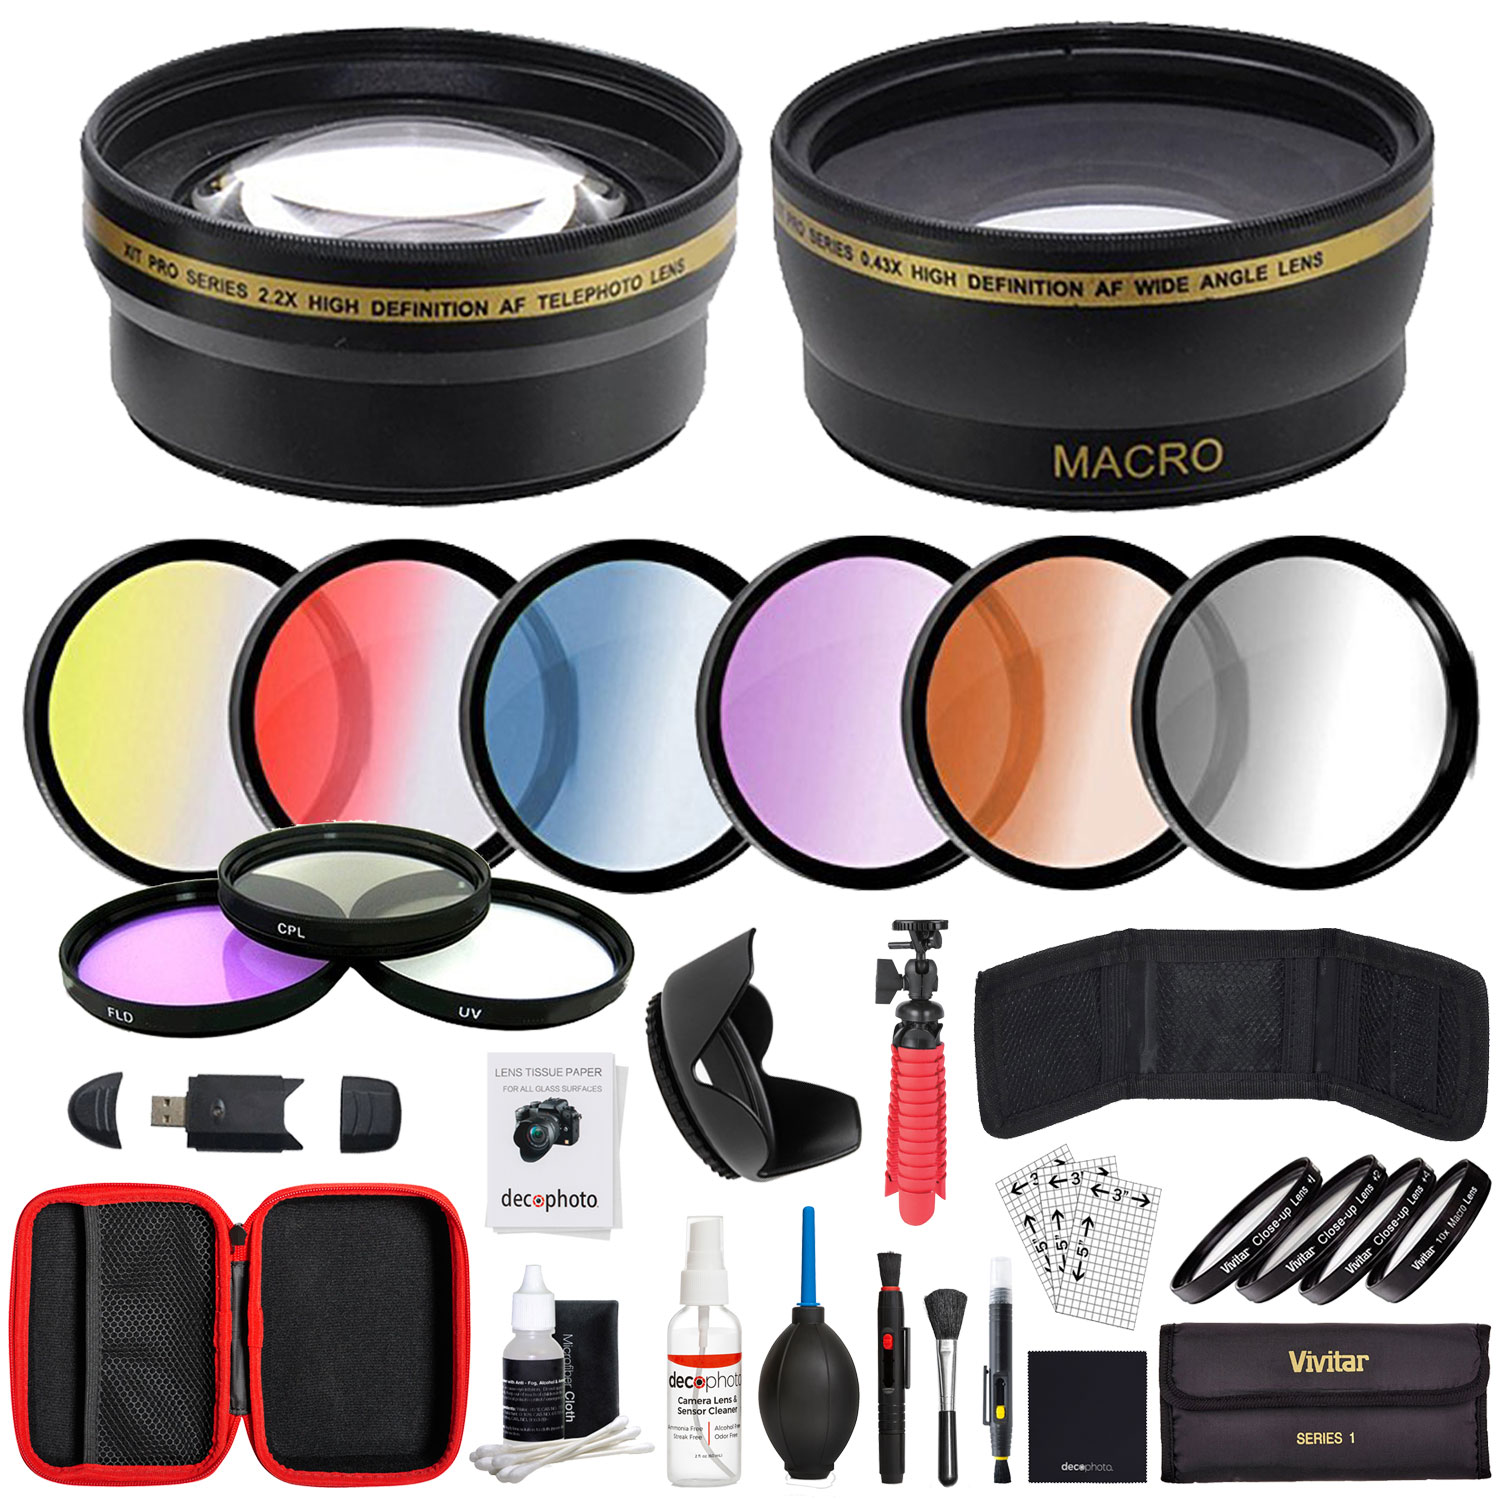 Deco Gear 52mm Lens Accessory Kit - Includes Filter Sets, Cases, and Cleaning Kit